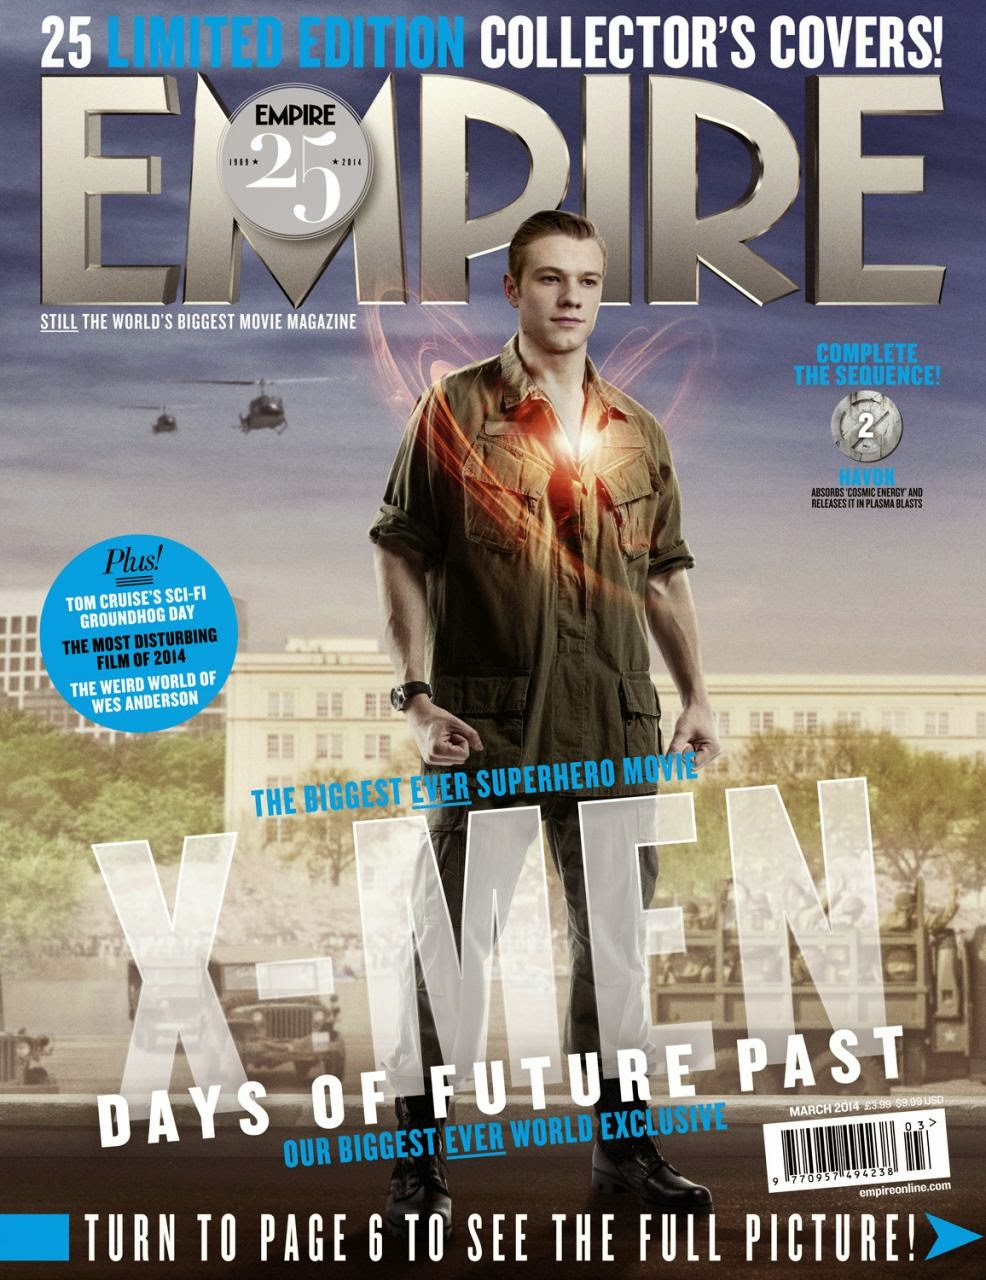 X-MEN DAYS OF FUTURE PAST-Official Poster Banner PROMO EMPIRE COVER-28JANEIRO2014-17